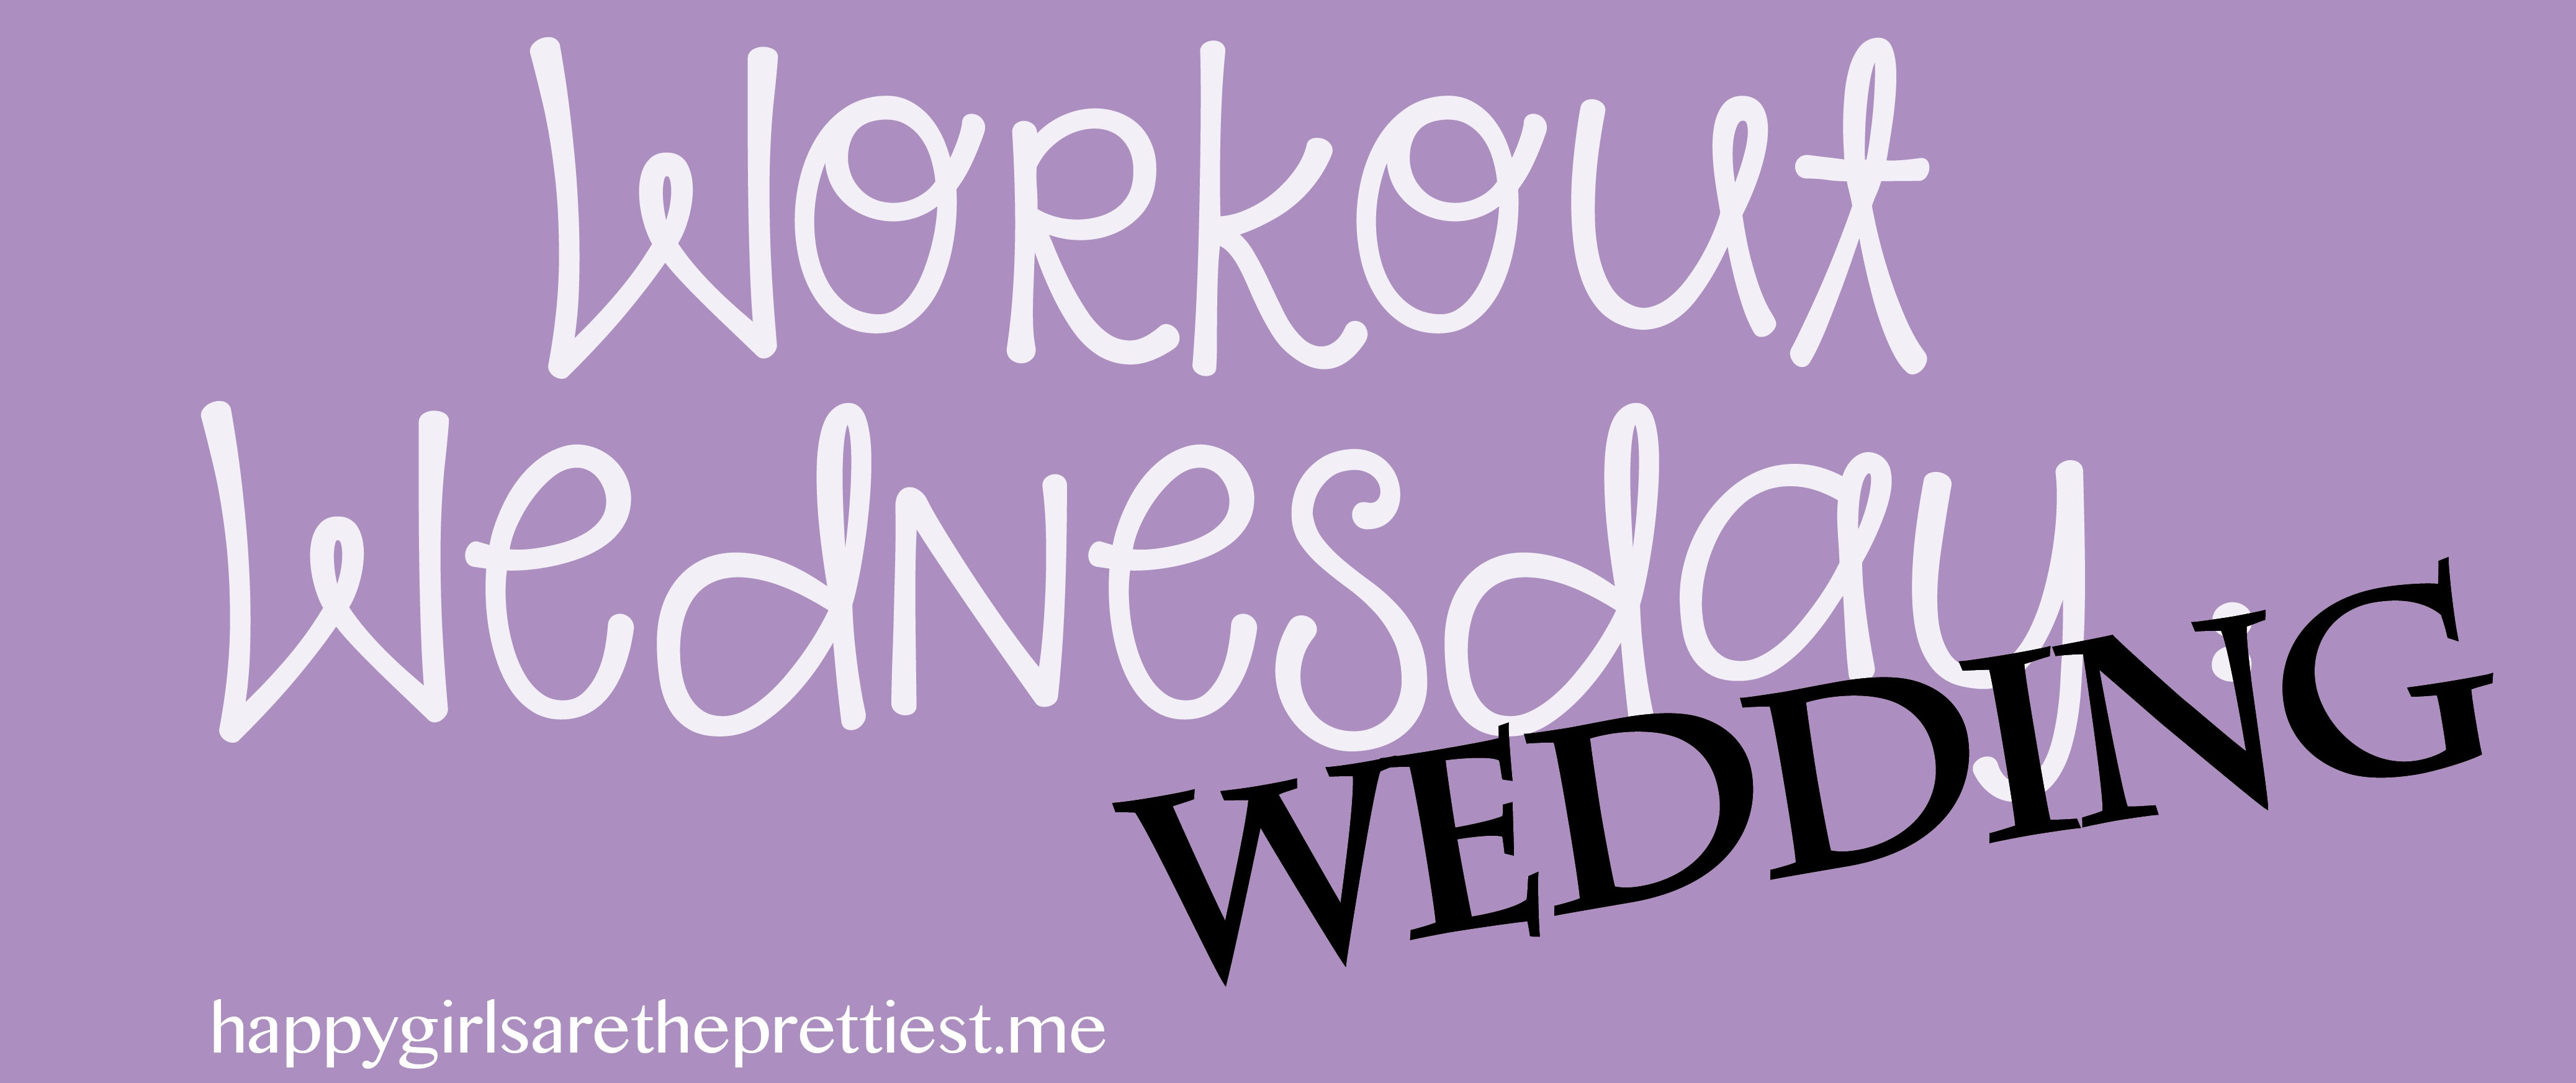 Workout Wednesday: Wedding Dress Edition | Happy Girls are the Prettiest